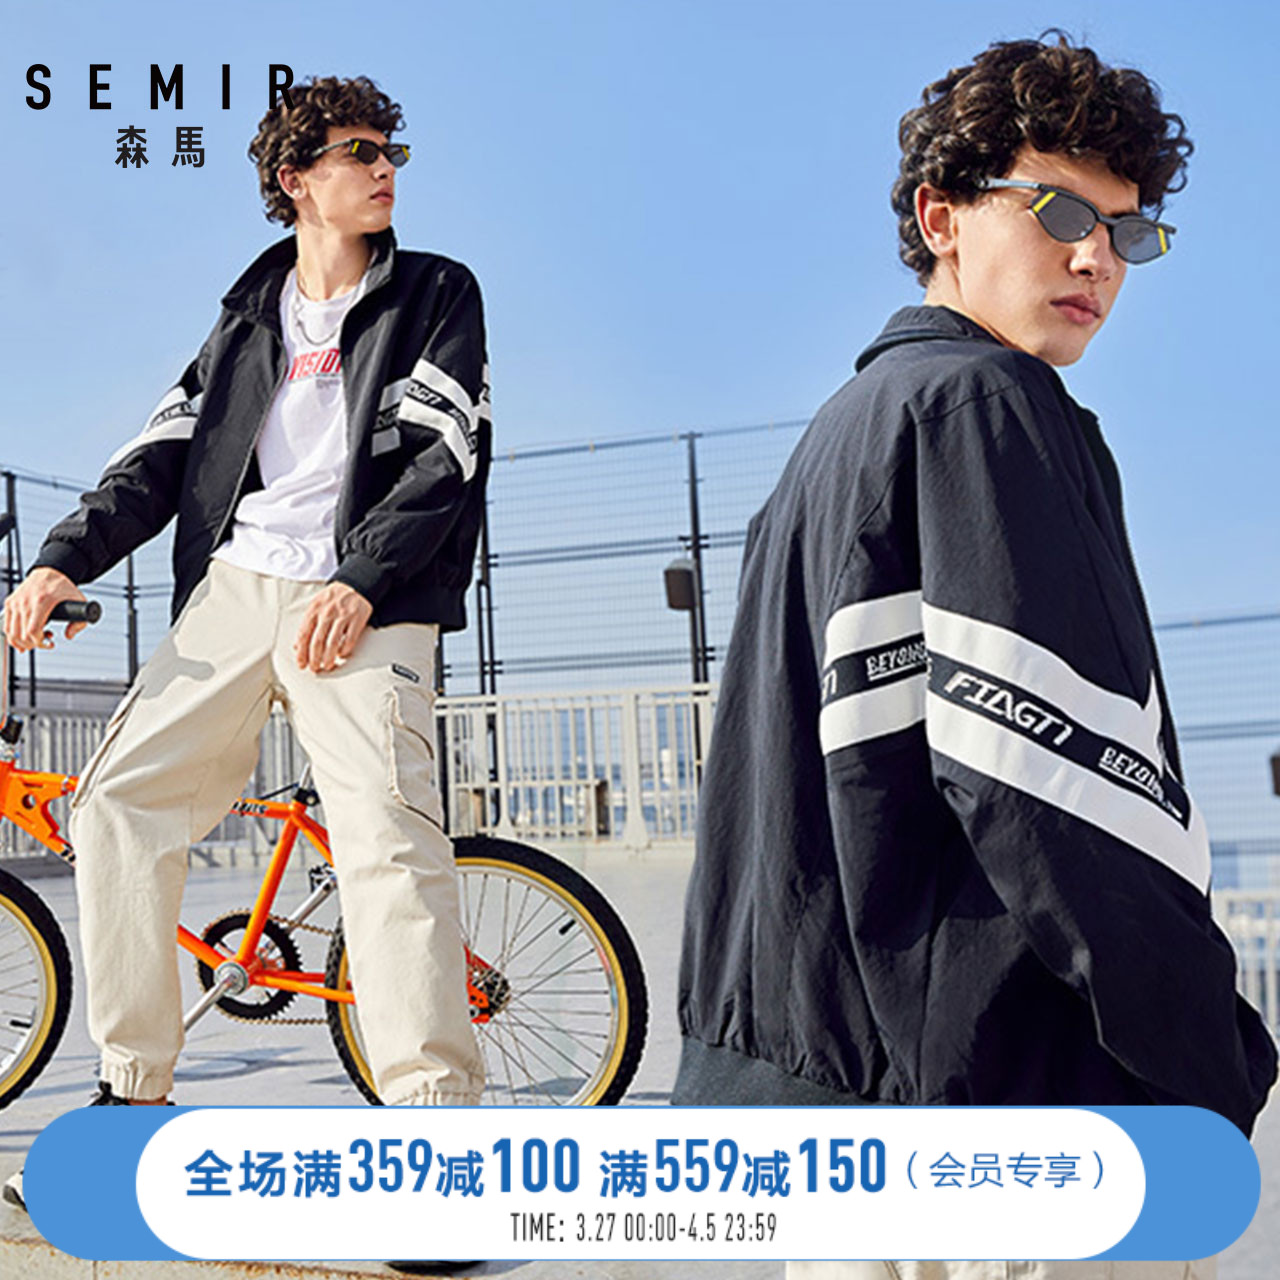 Senma 2020 spring new men's coat trend splicing collar jacket handsome loose top baseball suit men